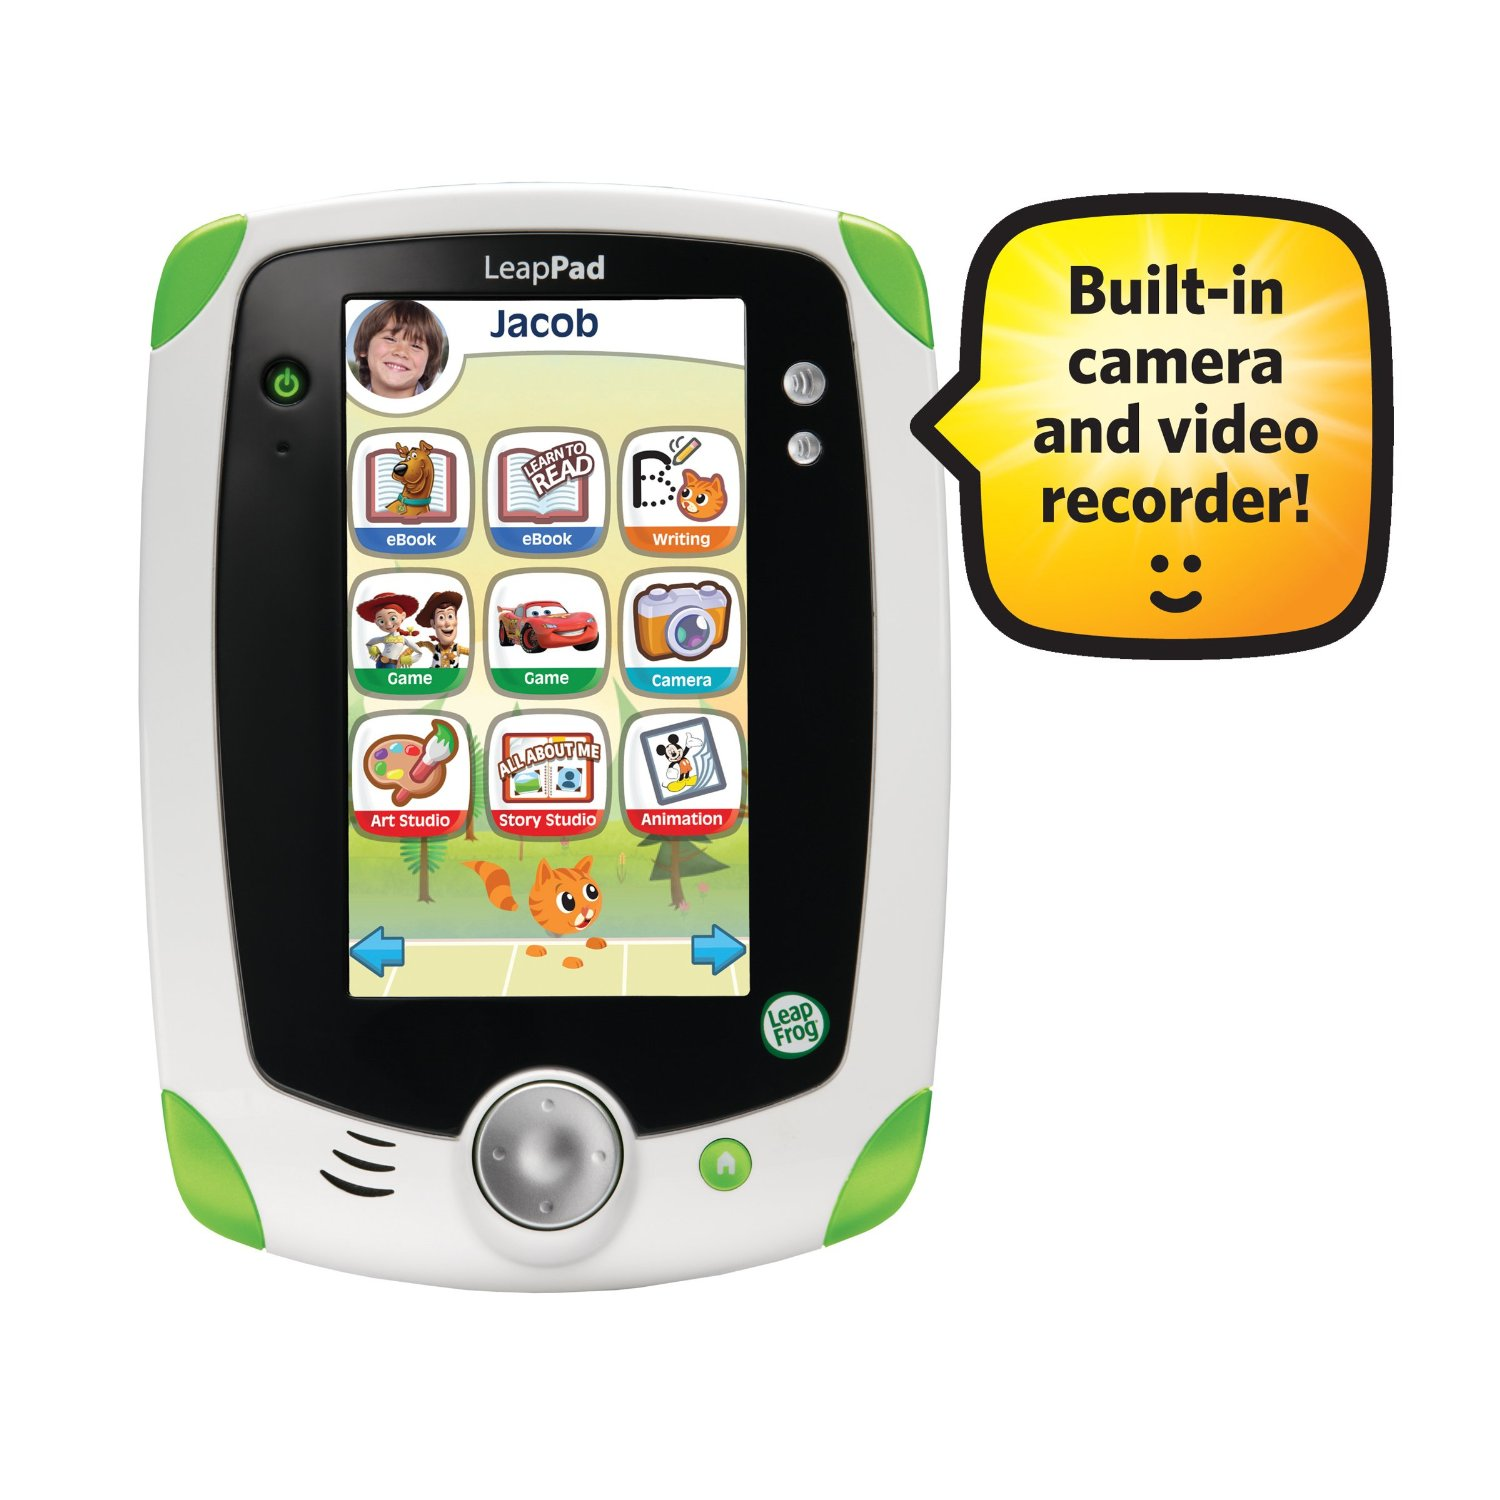 Find great deals on eBay for leapfrog leappad. Shop with confidence.